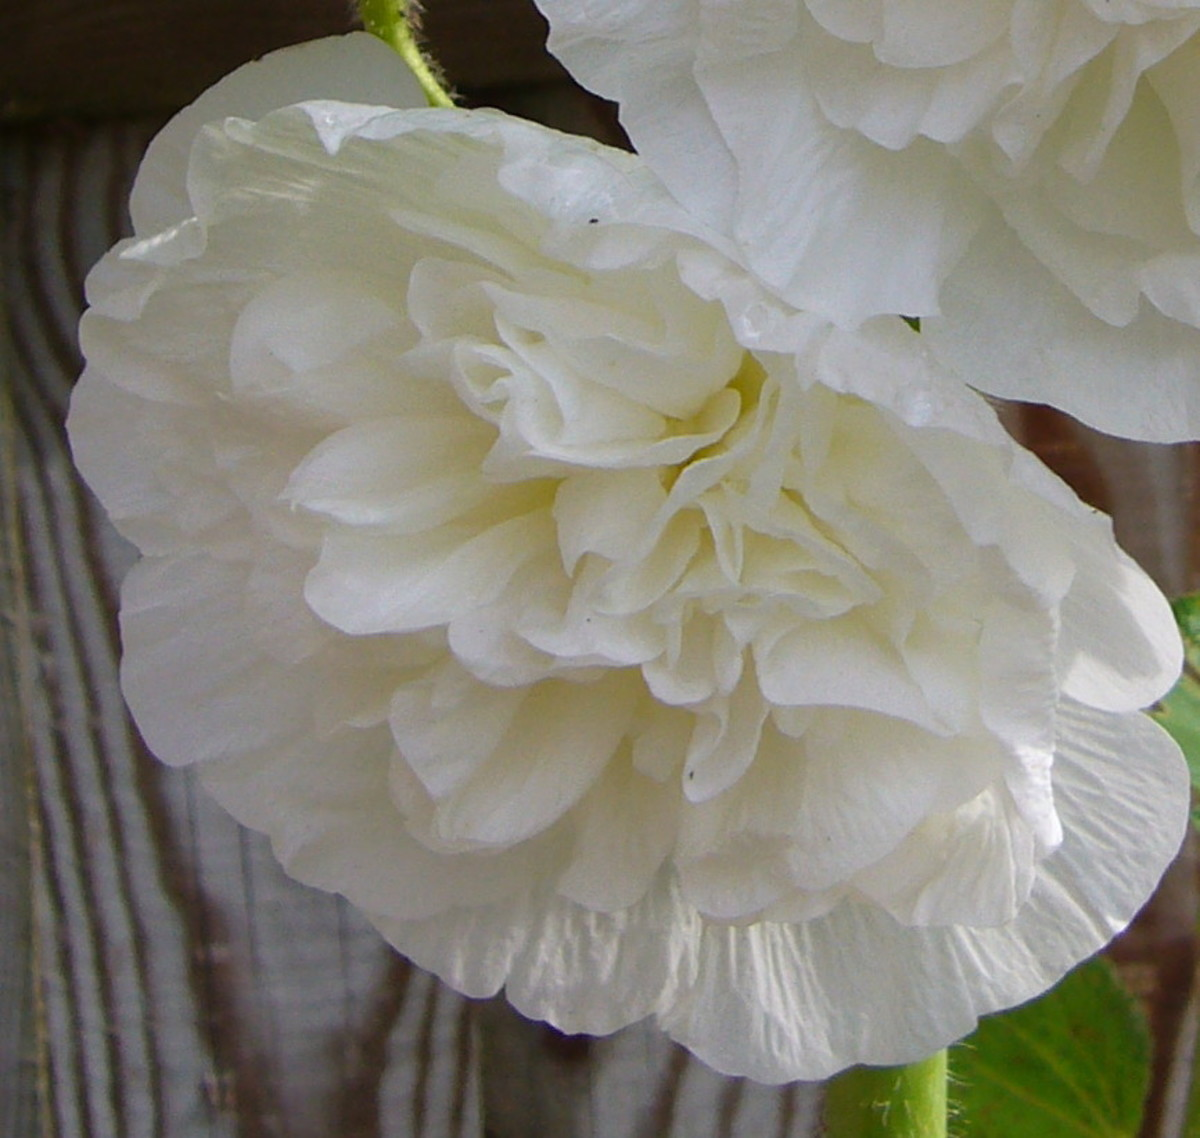 Photo: white hollyhock flower